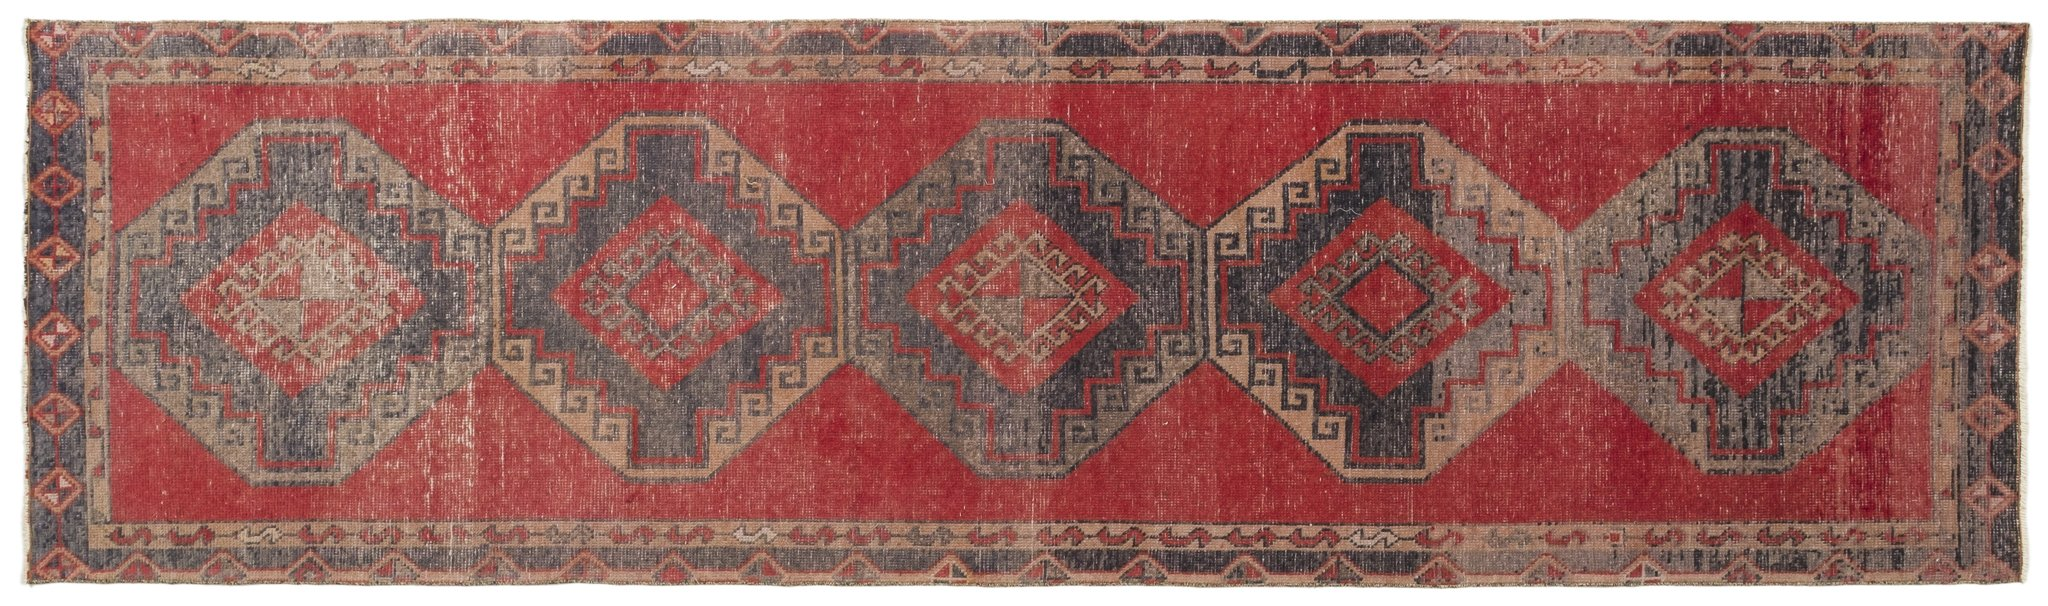 Vintage Turkish Runner Rug Arminda